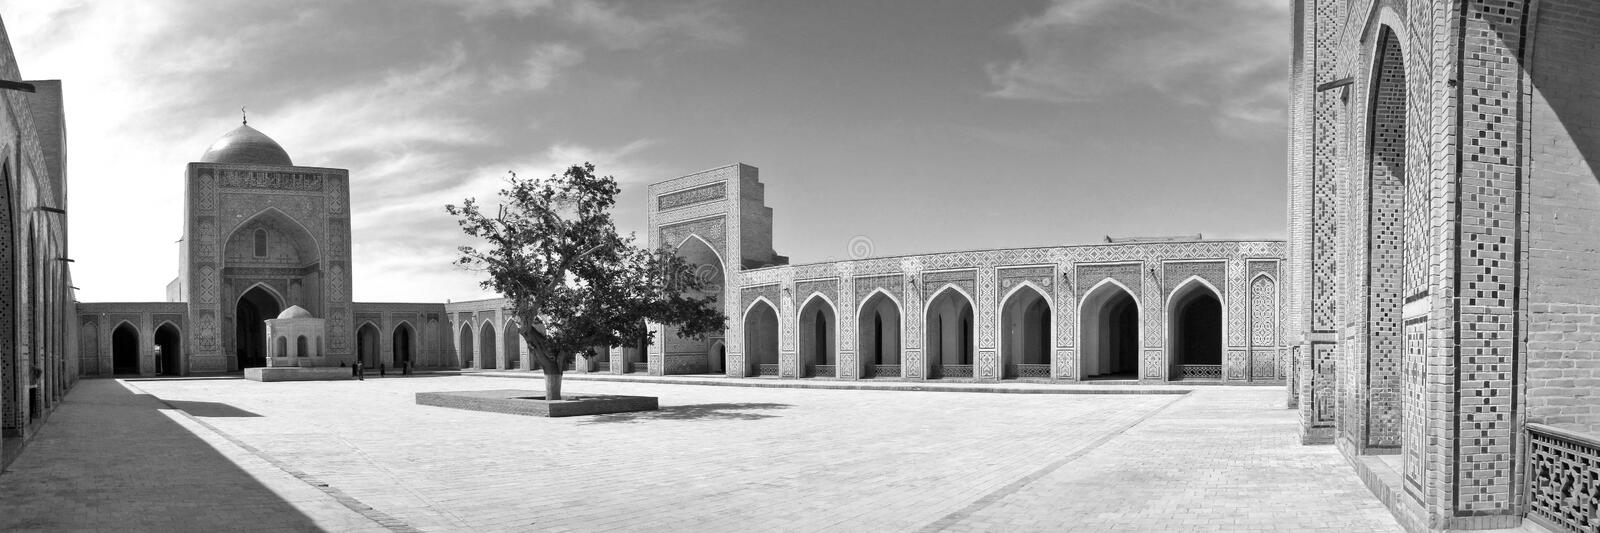 Download City of Bukhara stock image. Image of historic, arches - 17850793